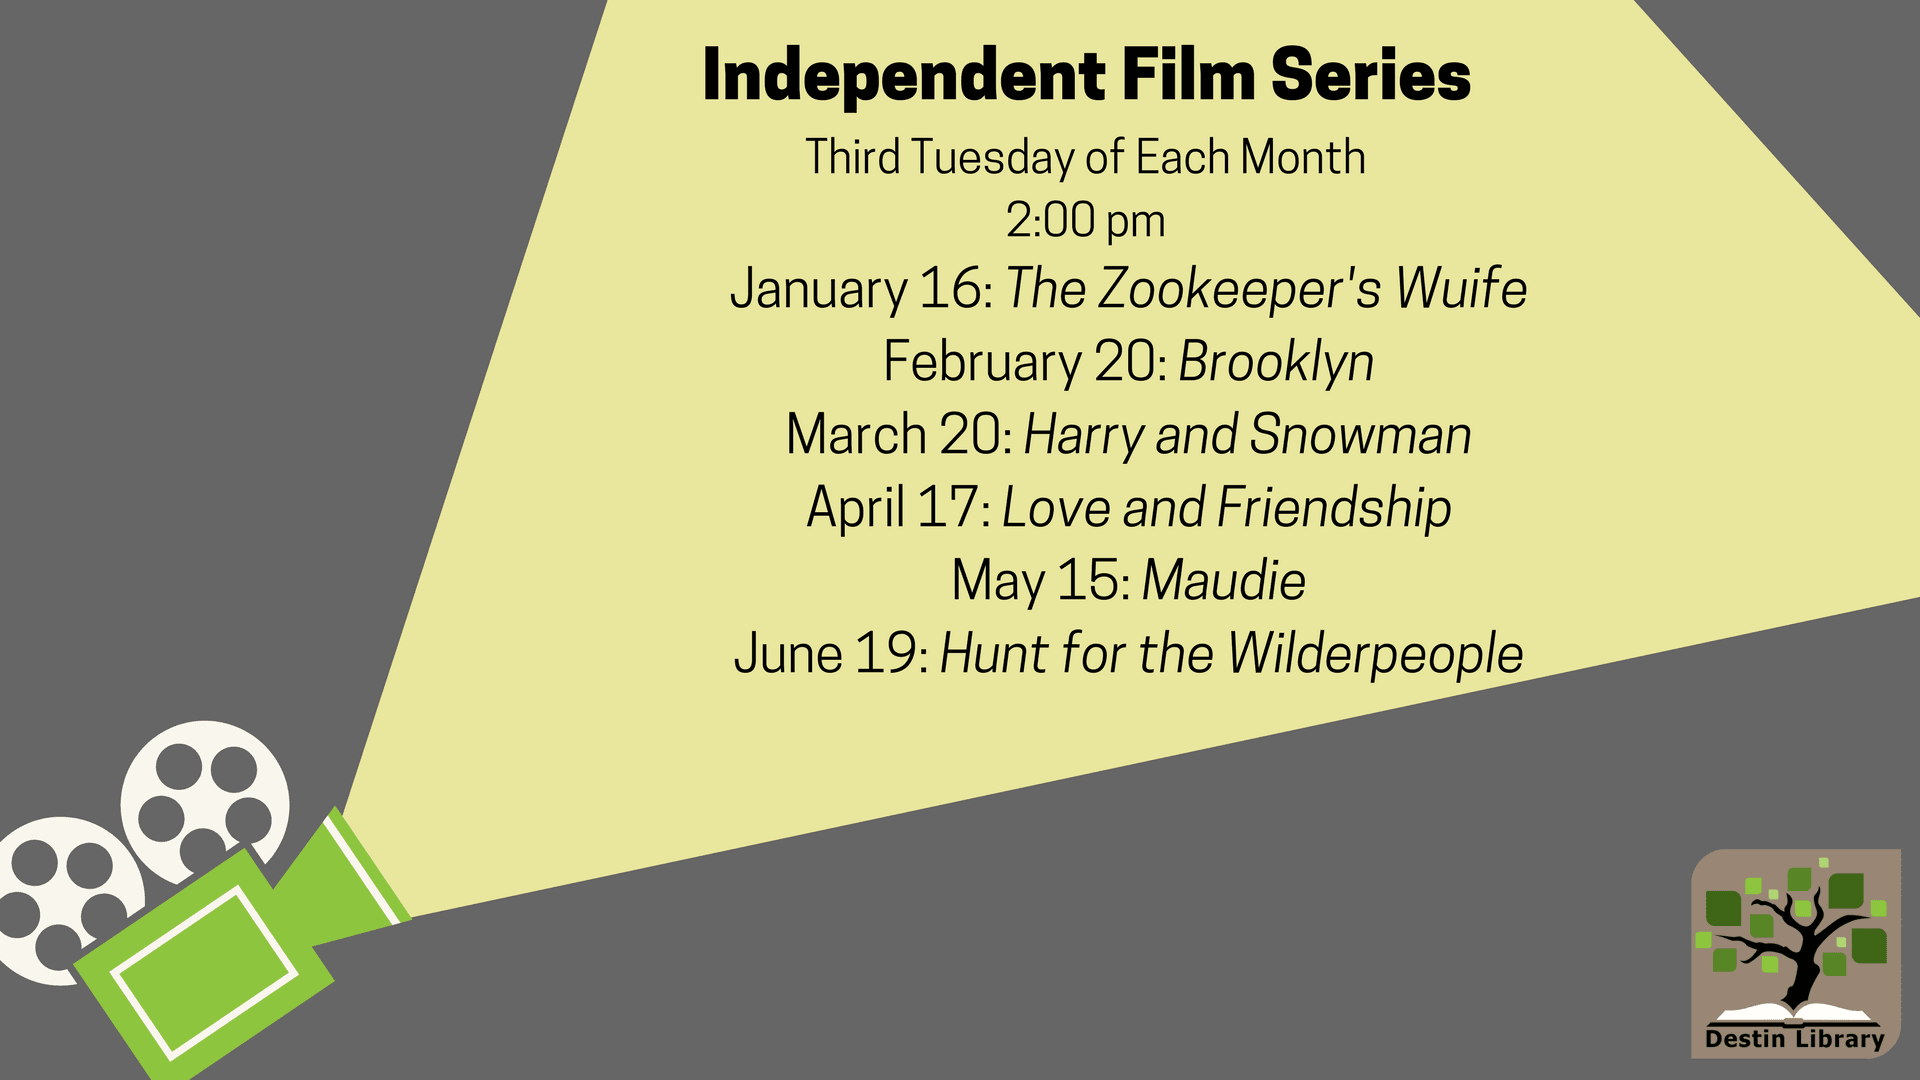 A listing of the films to be shown during the library's monthly independent film series.